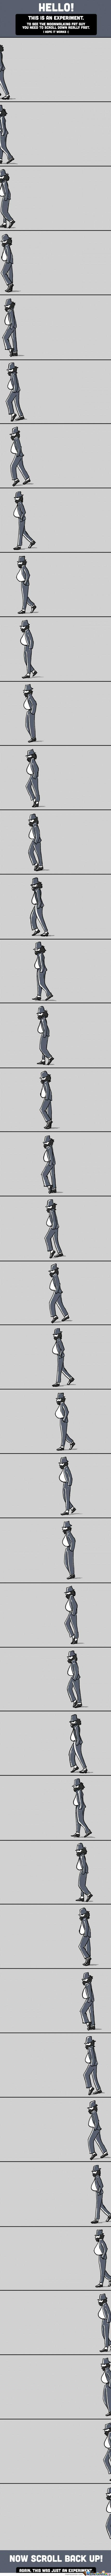 Moonwalk Experiment